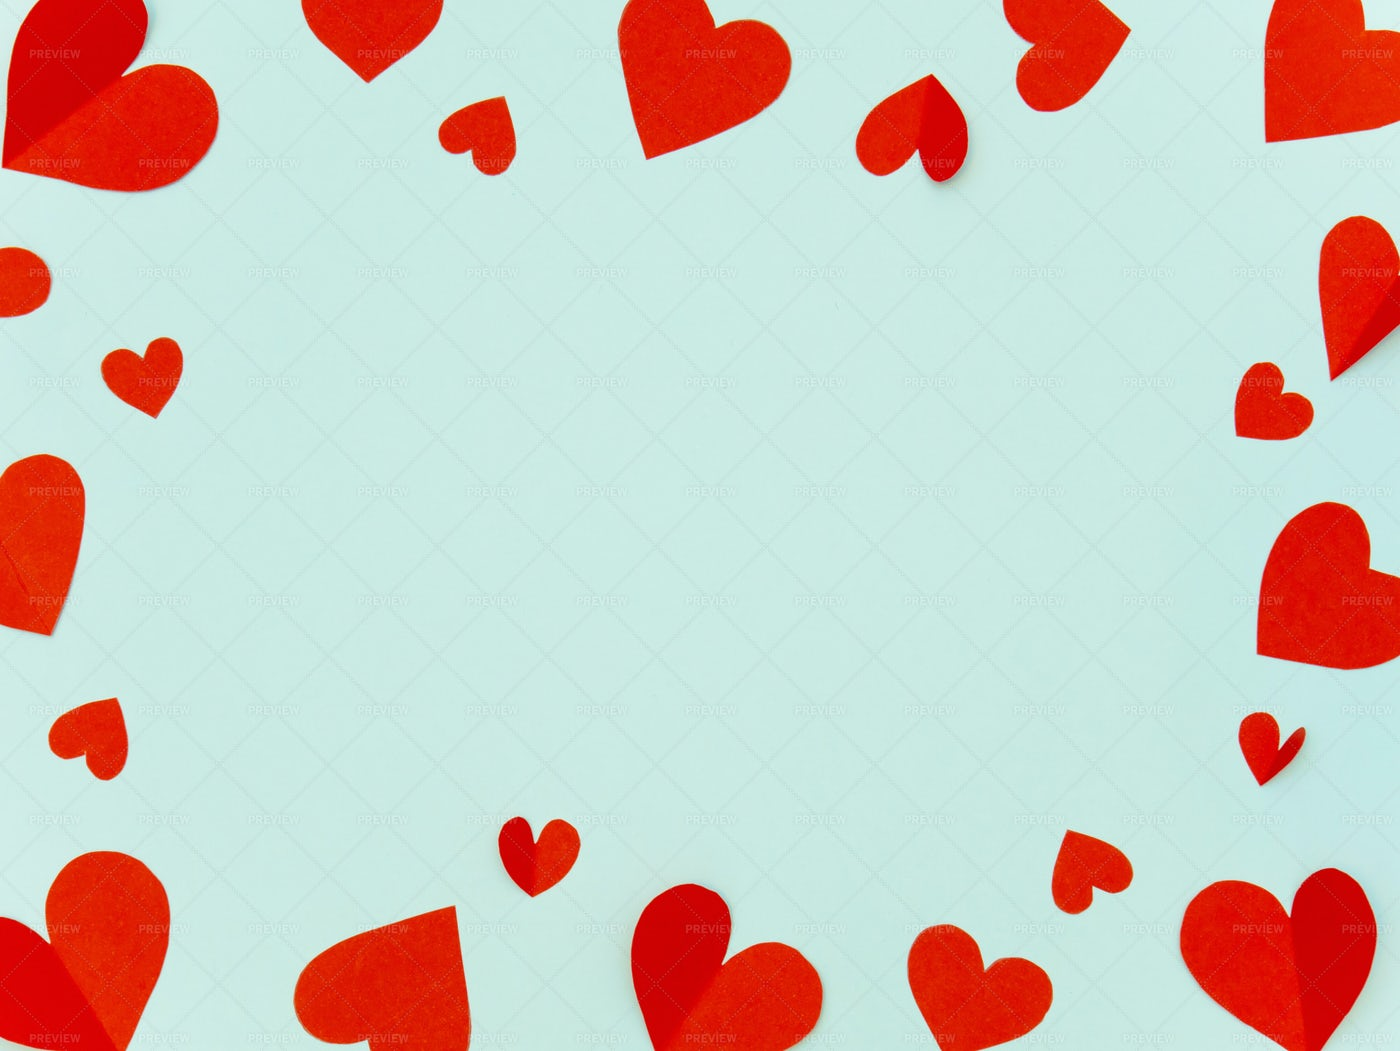 Red Heart Frame Background: Stock Photos